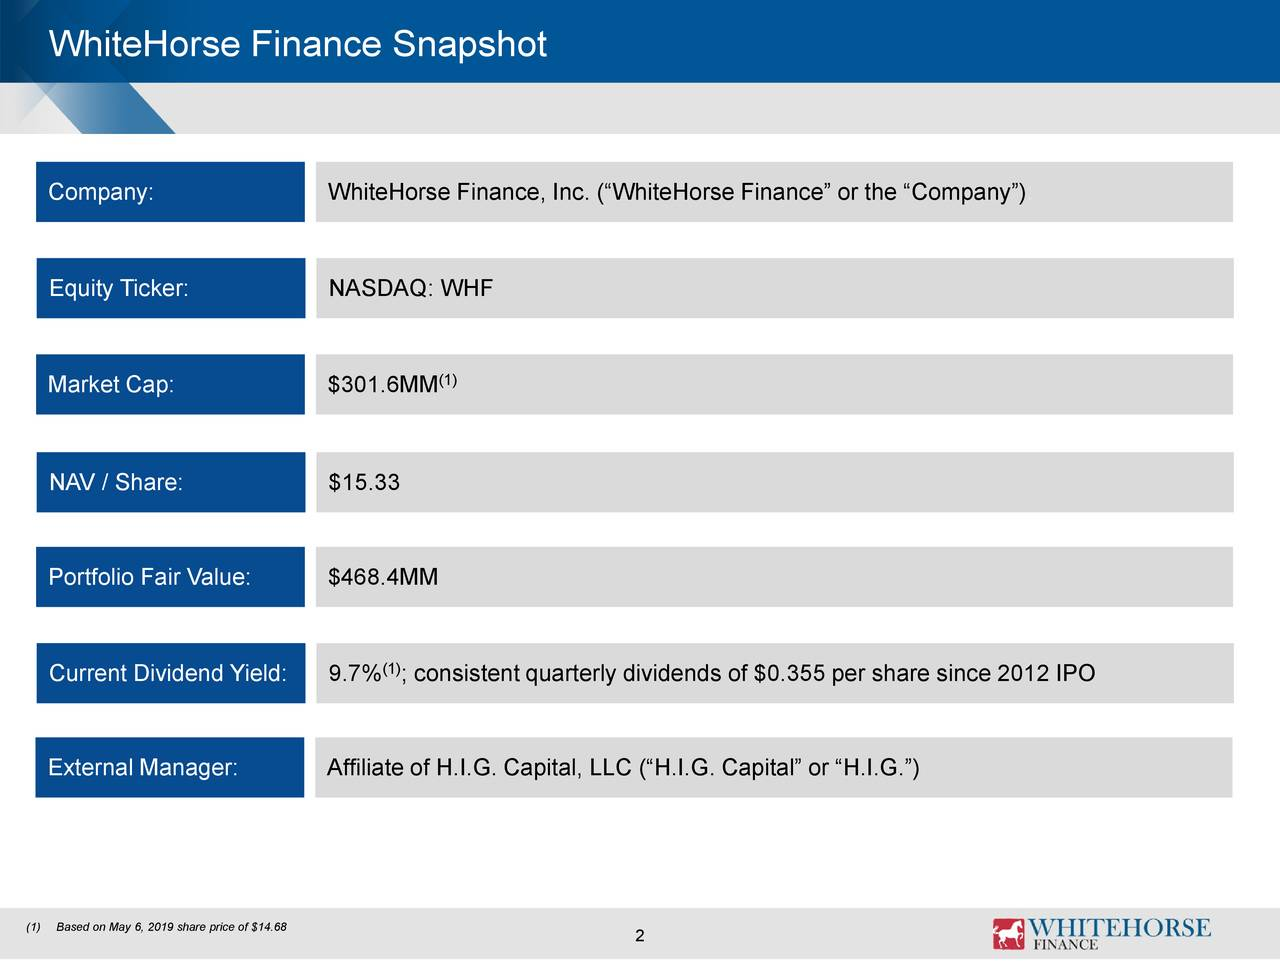 """Company: WhiteHorse Finance, Inc. (""""WhiteHorse Finance"""" or the """"Company""""): Equity Ticker: NASDAQ: WHF Market Cap: $301.6MM (1) NAV / Share: $15.33 Portfolio Fair Value: $468.4MM Current Dividend Yield: 9.7% ; consistent quarterlydividends of $0.355 per sharesince 2012 IPO External Manager: Affiliate of H.I.G. Capital, LLC (""""H.I.G. Capital"""" or """"H.I.G."""") (1)Based on May 6, 2019 share price of $14.68 2"""